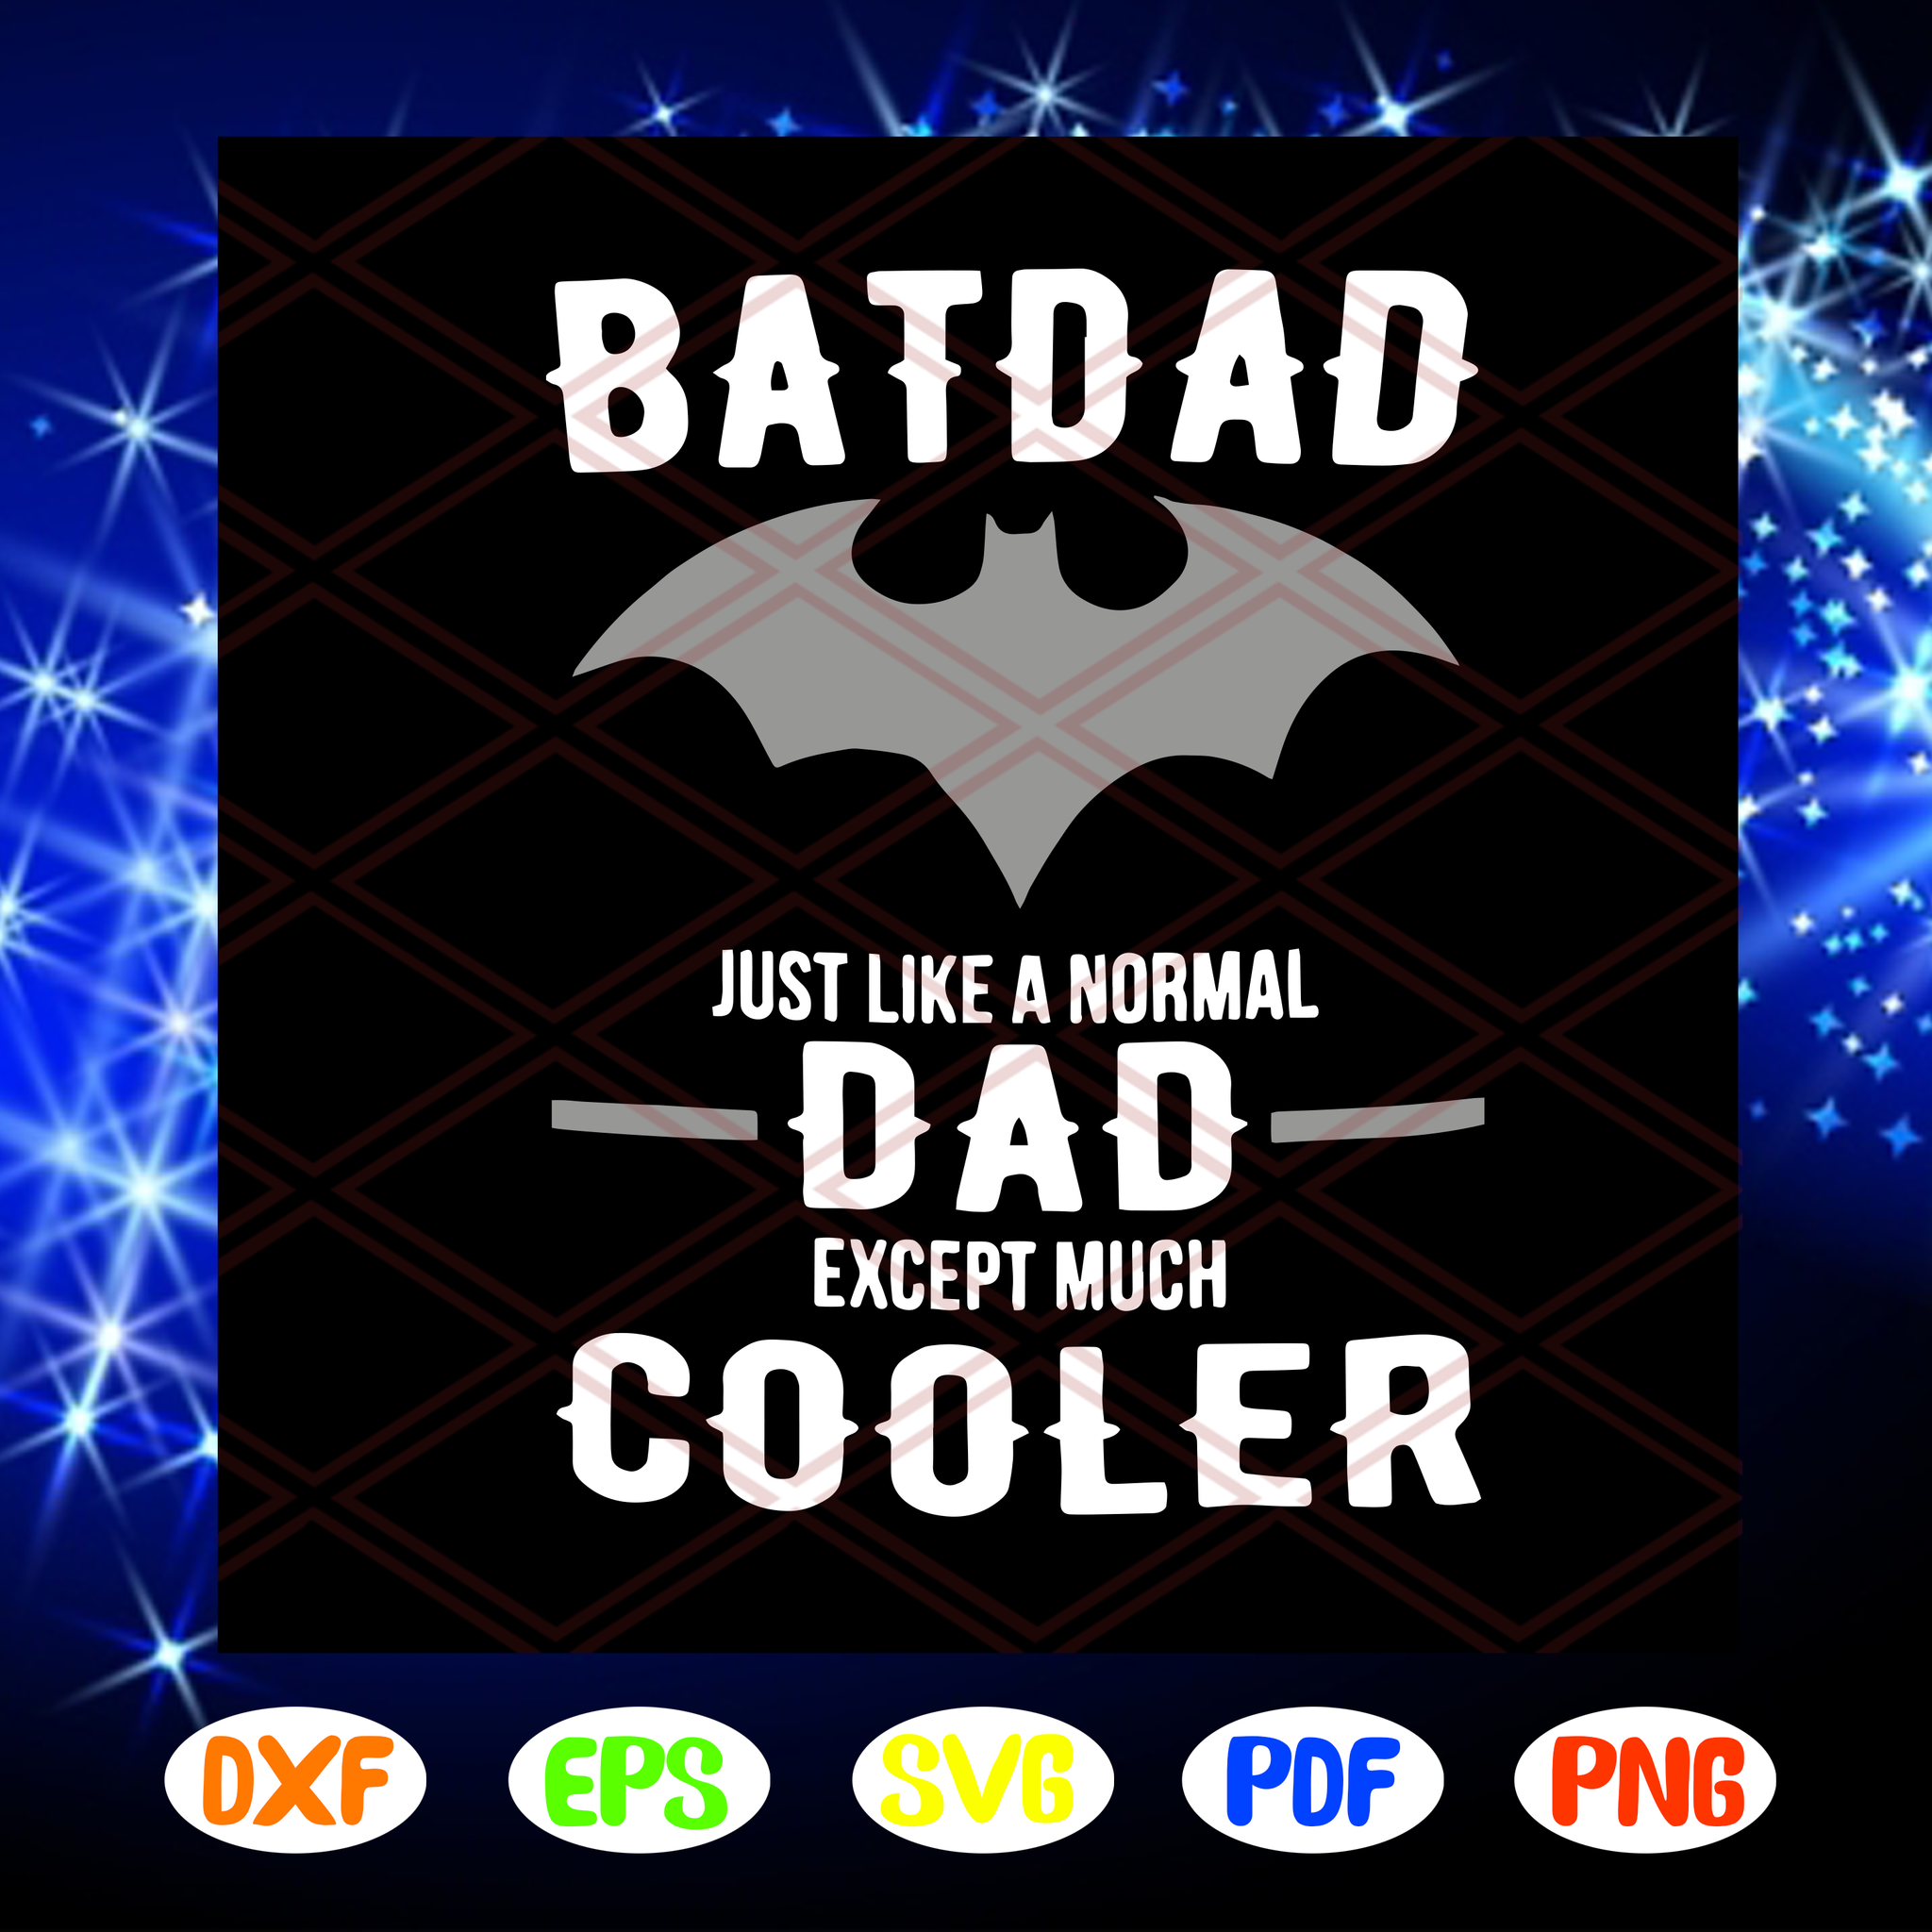 Bat dad just like a normal dad except much cooler svg, batdad svg, fathers day svg, bat fathers day svg, fathers day gift, gift for man, gift for dad svg, grandpa life, Files For Silhouette, Files For Cricut, SVG, DXF, EPS, PNG, Instant Download